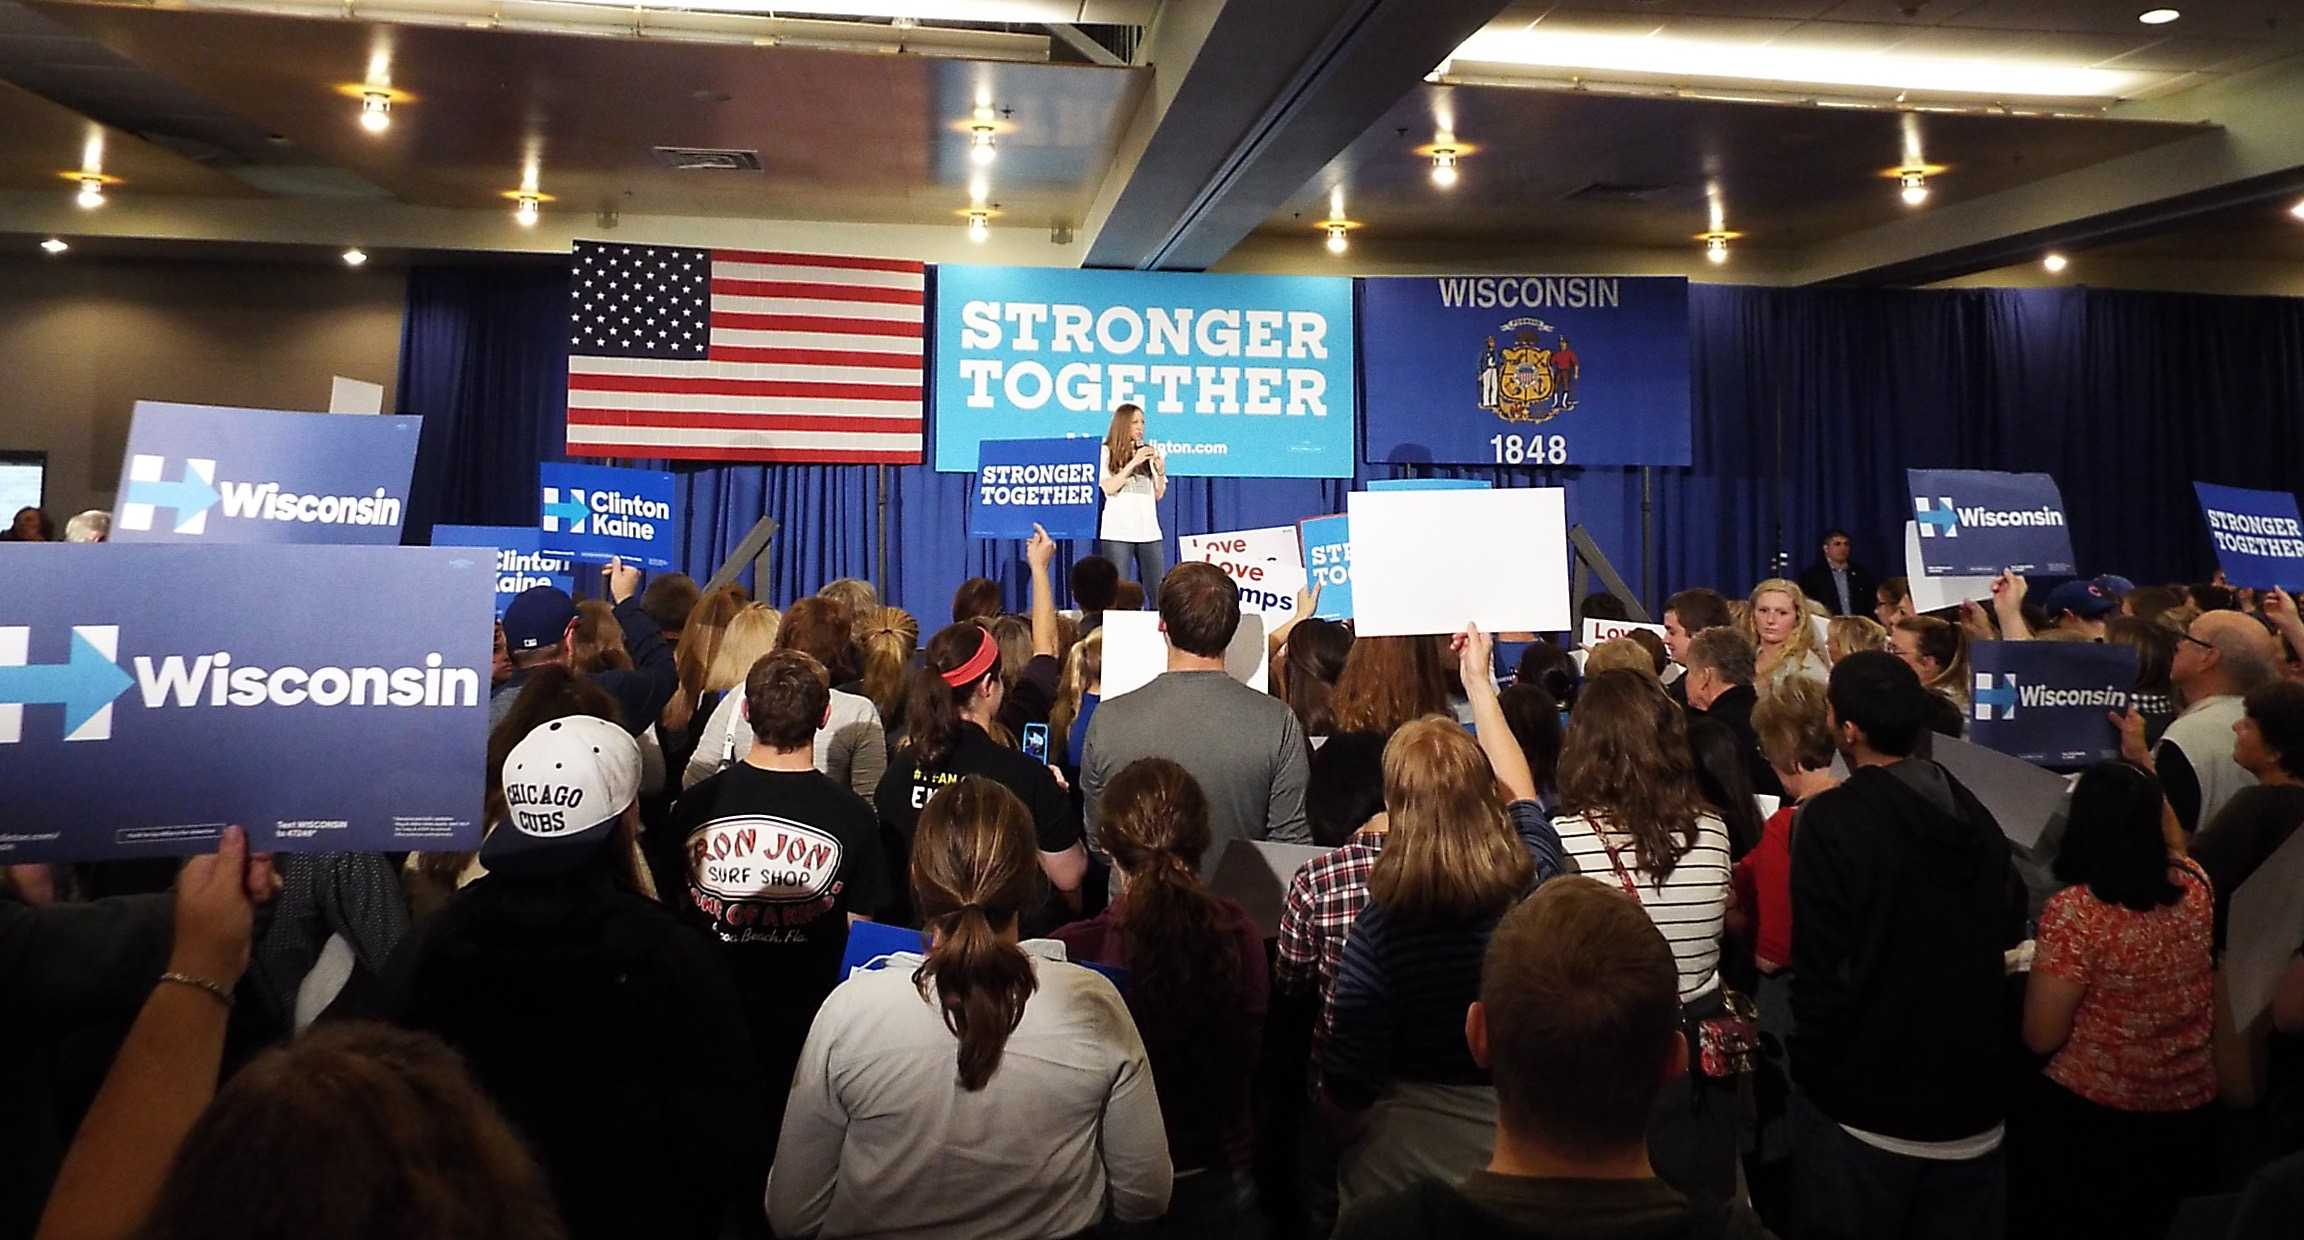 Chelsea Clinton visits Oshkosh campus